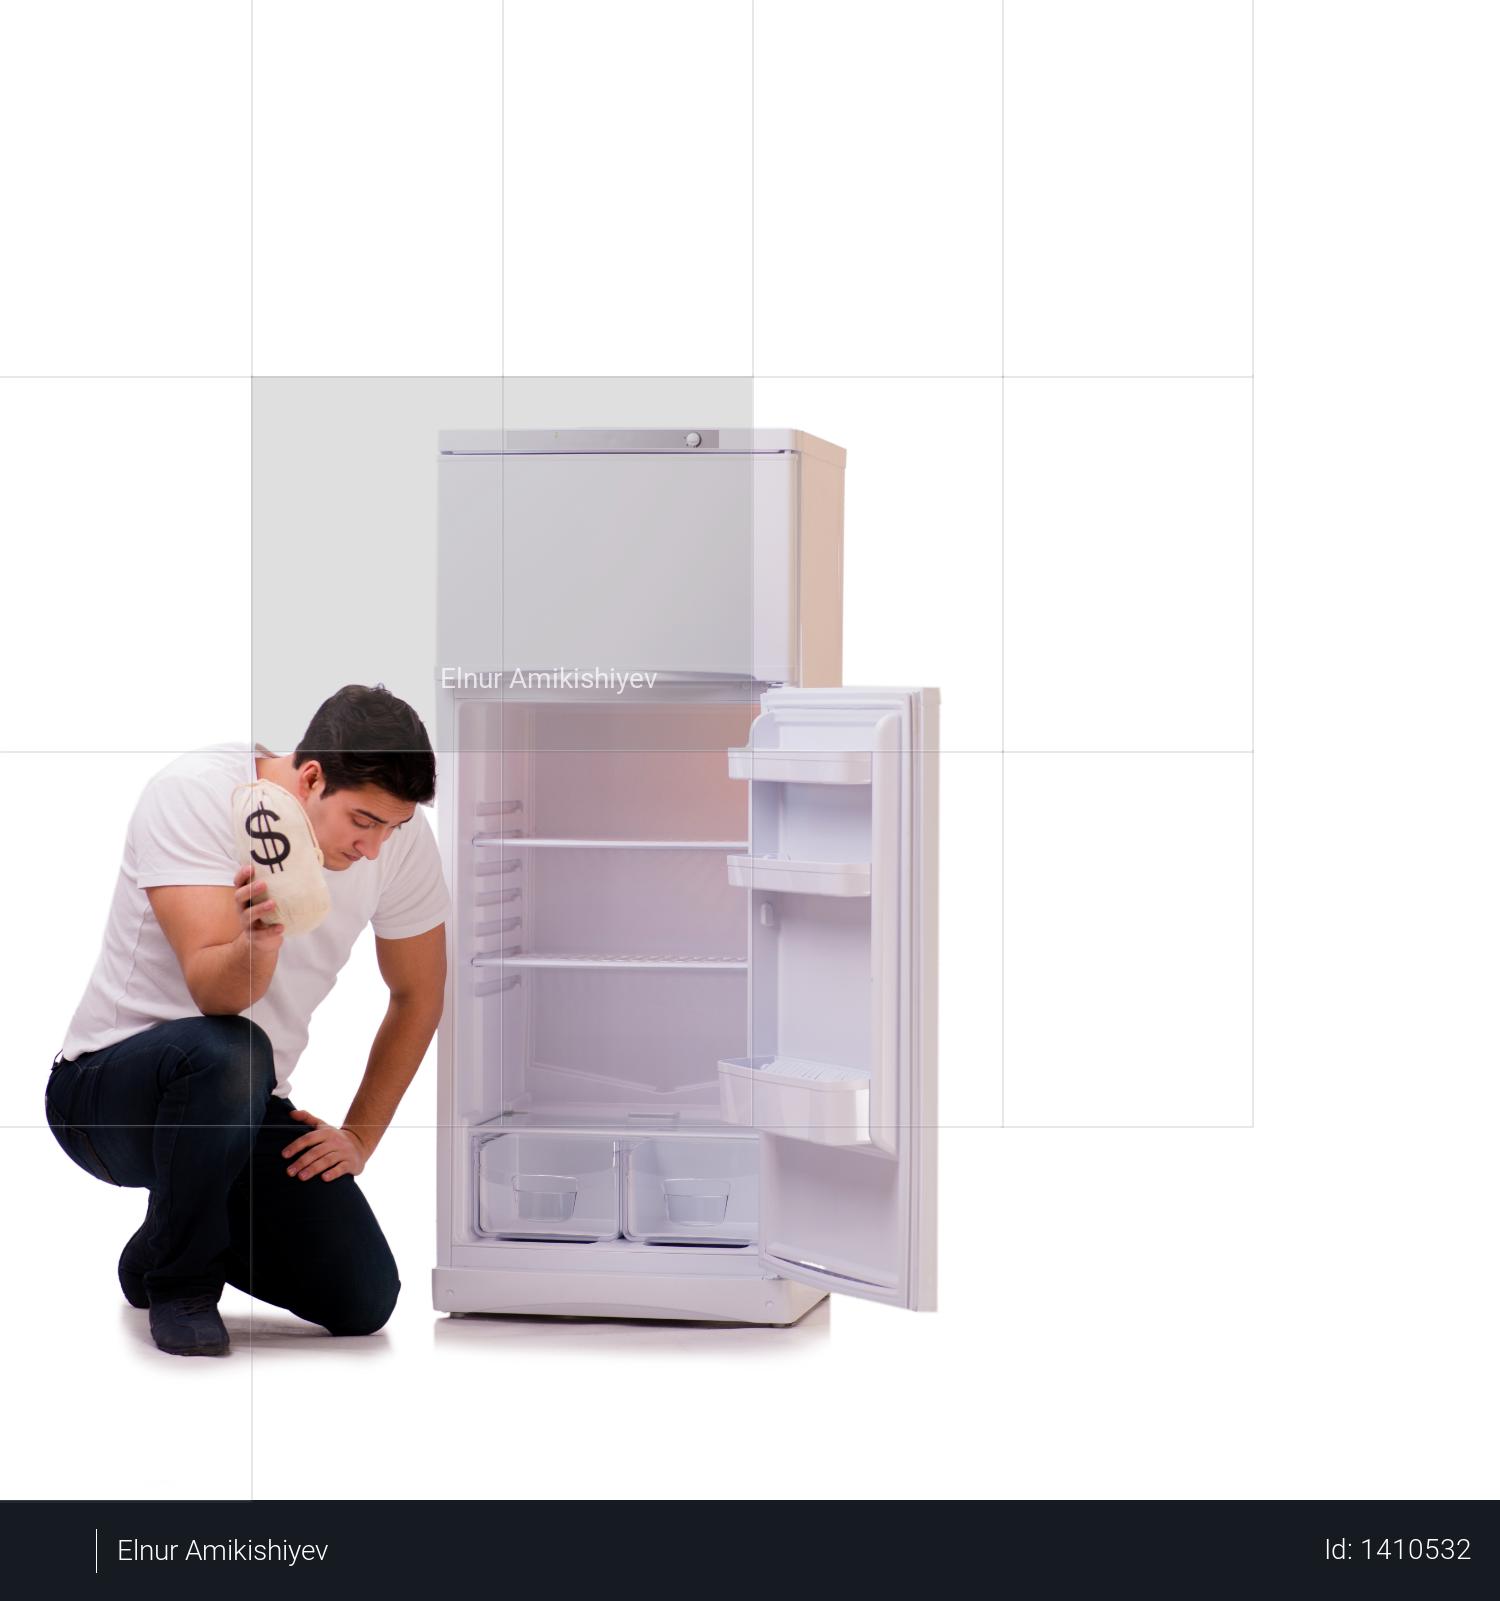 Hungry man looking for money to fill the fridge Photo